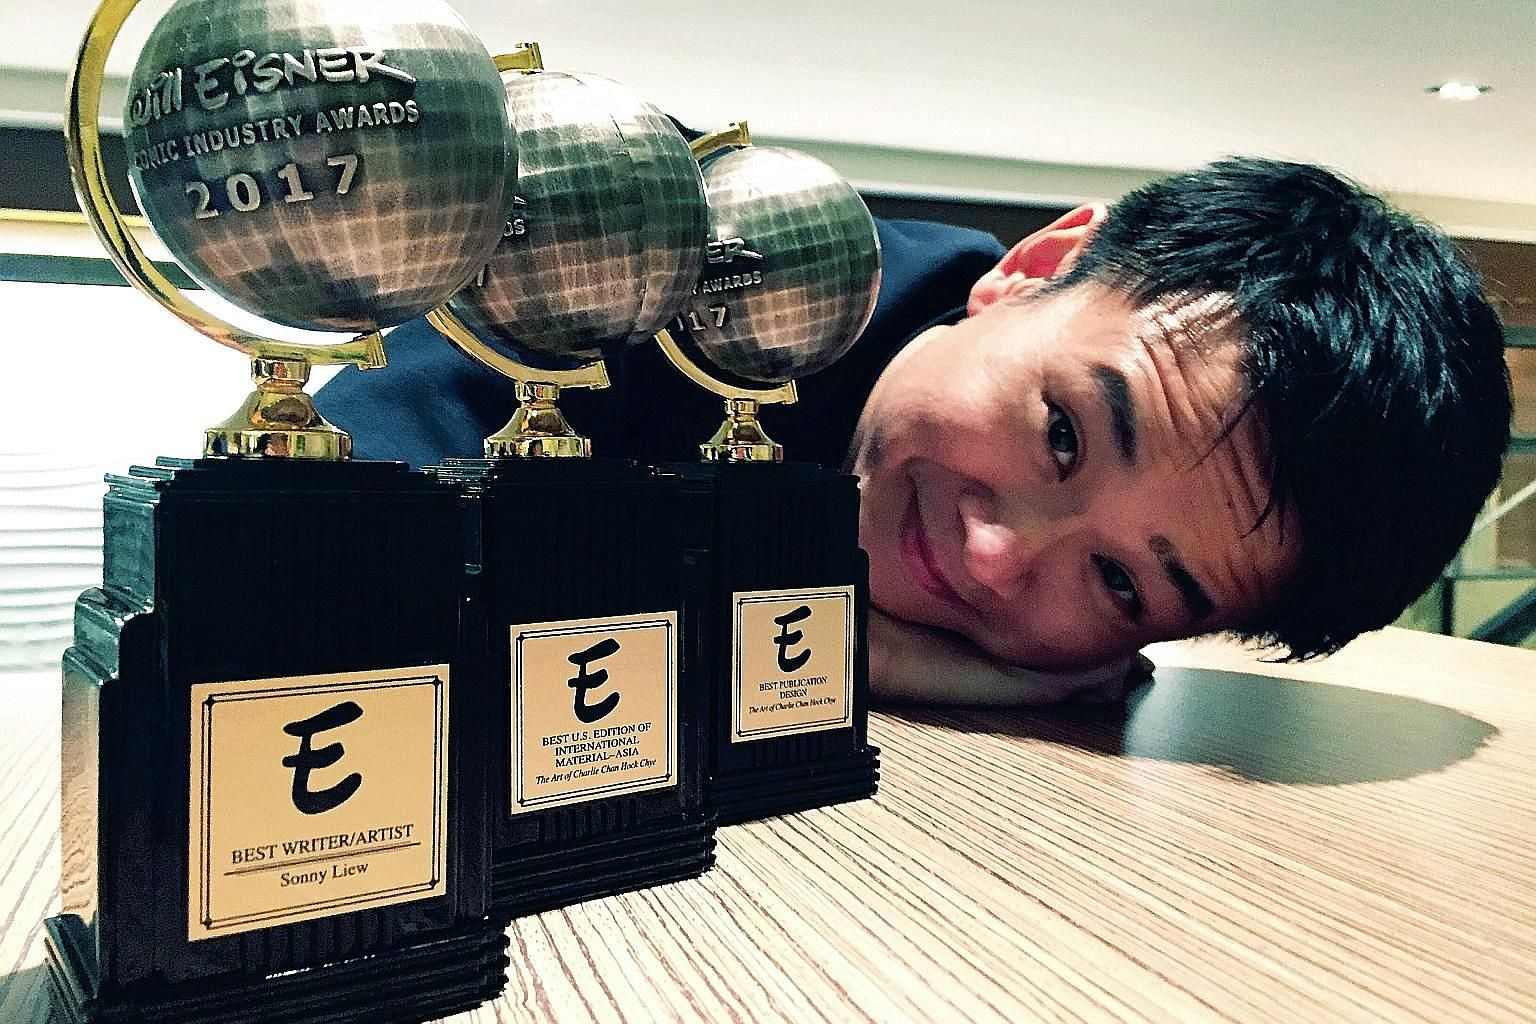 Graphic novelist Sonny Liew with the three Eisner awards he won for his graphic novel, The Art Of Charlie Chan Hock Chye, which retells Singapore's journey to nationhood.